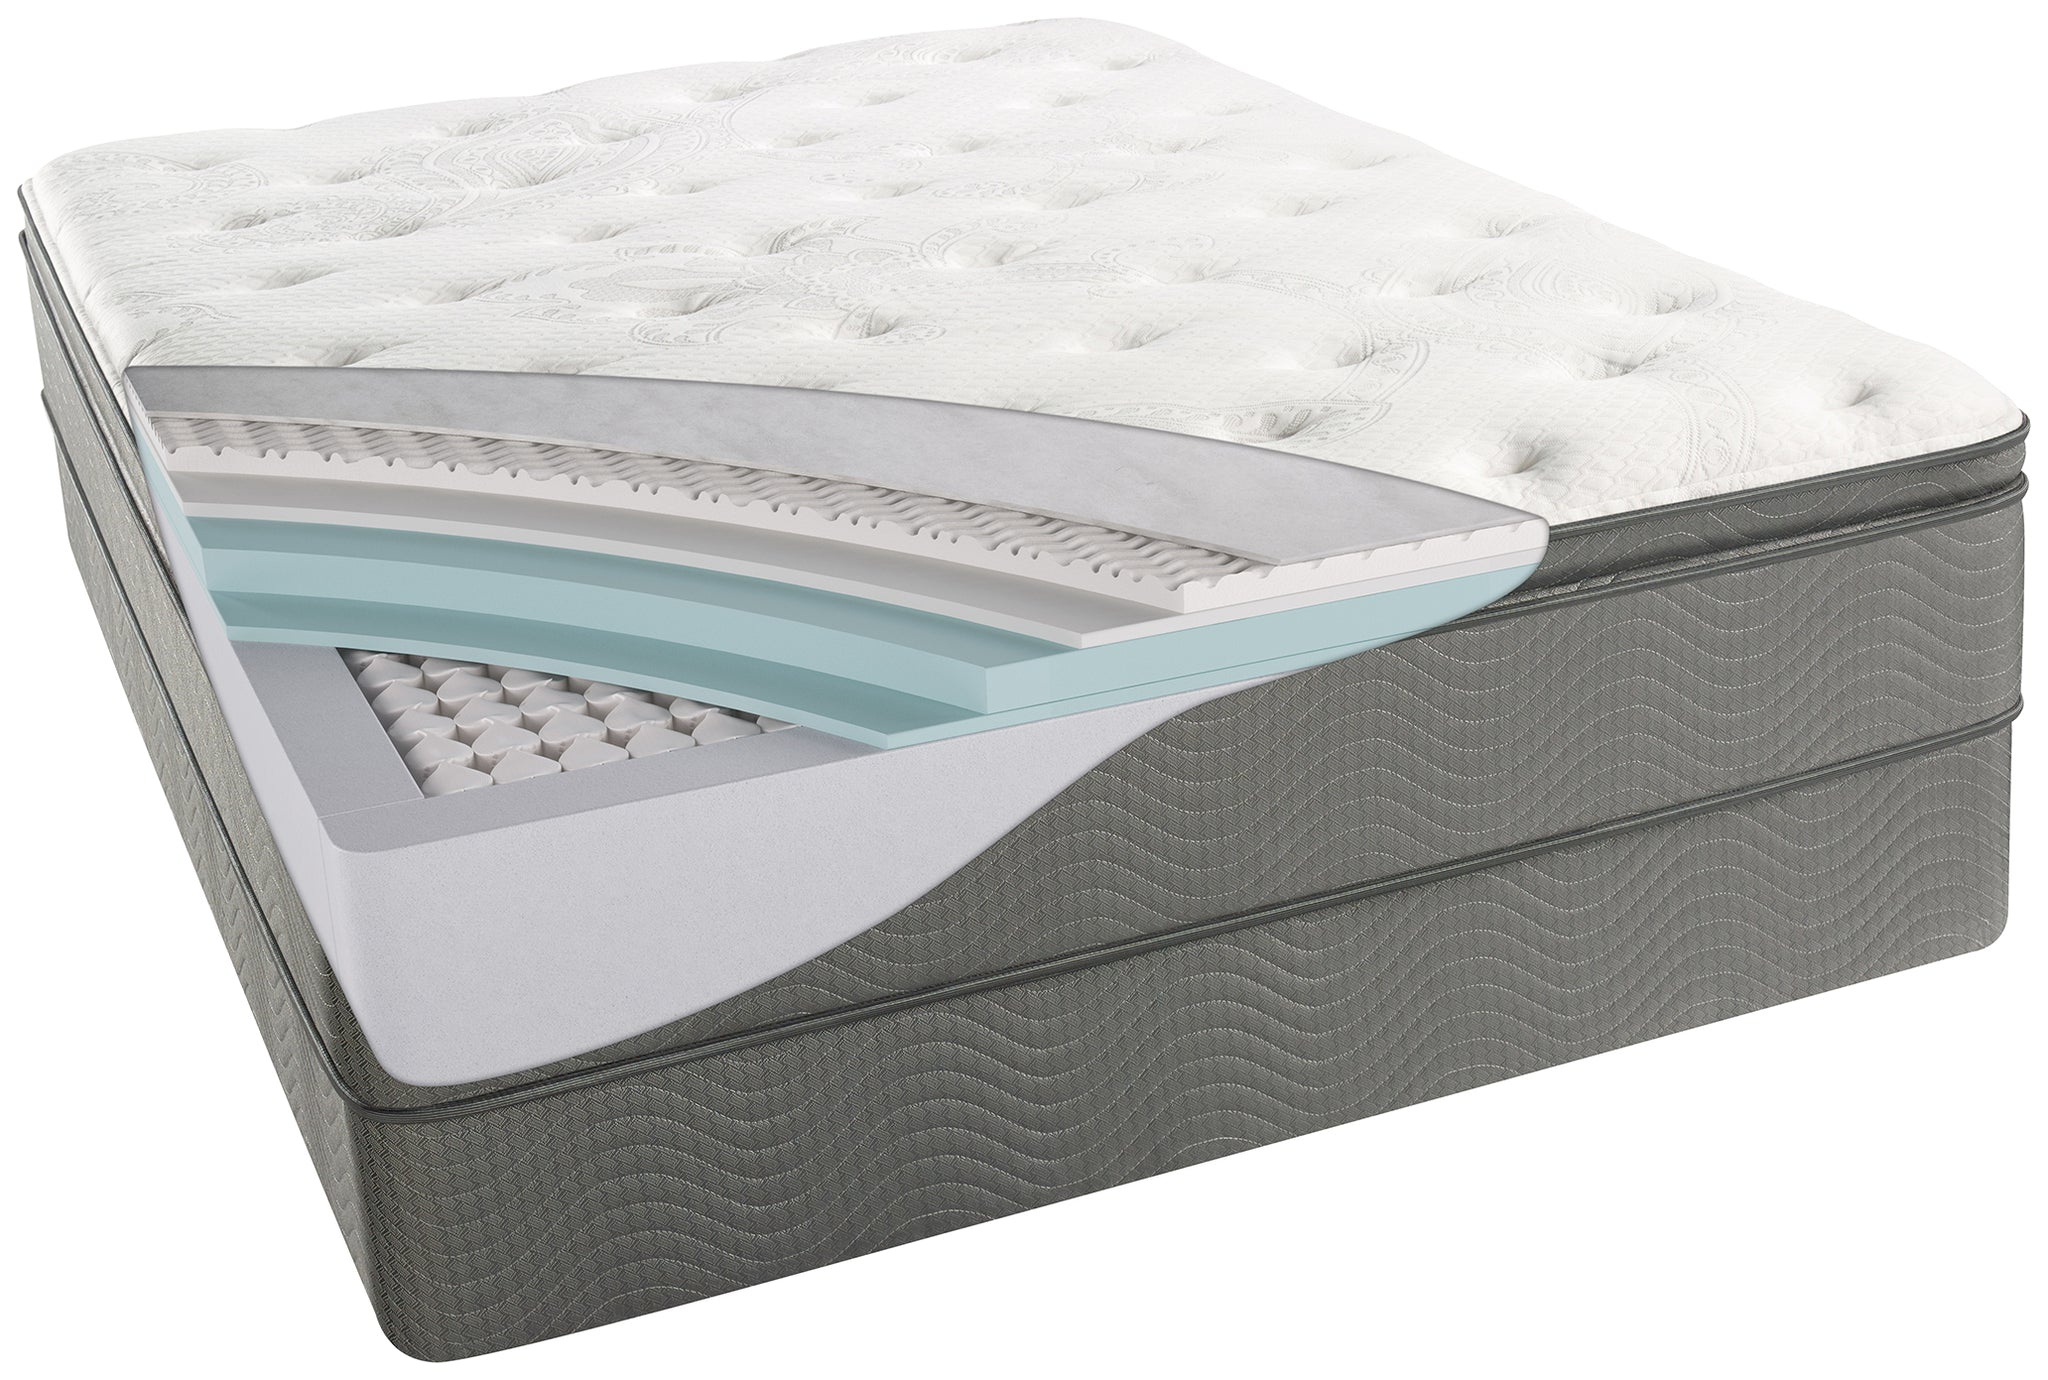 buyjohn single down main pillow com rsp topper pdp at johnlewis mattress online goose john lewis natural